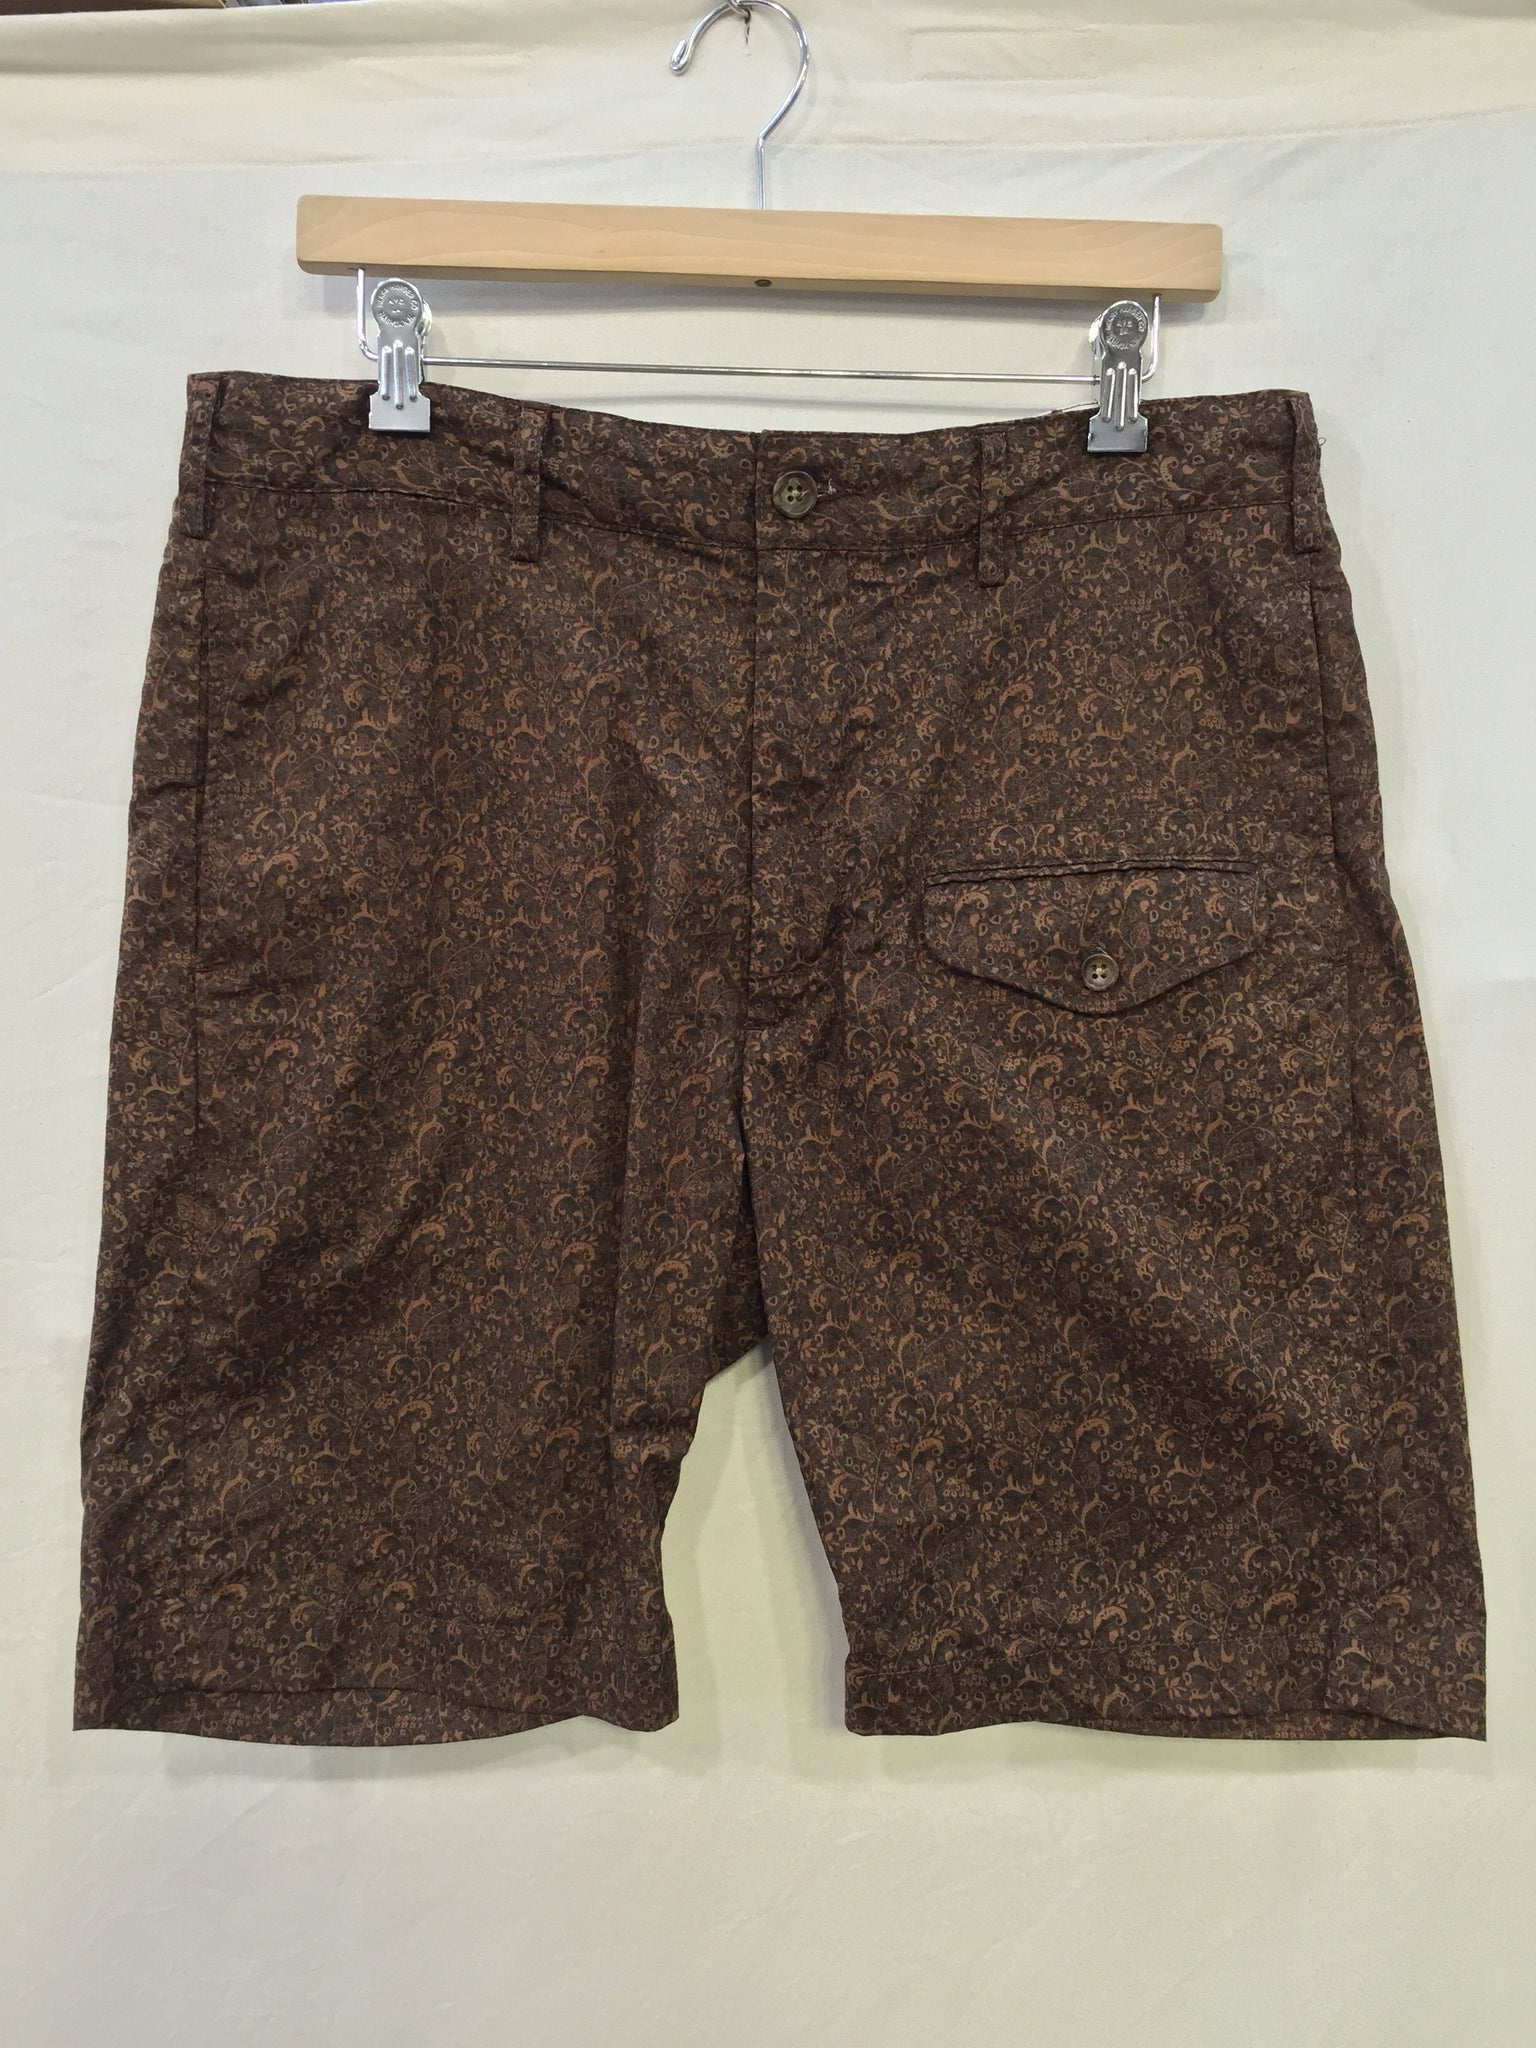 GHURKA SHORT - BROWN PAISLEY PRINT